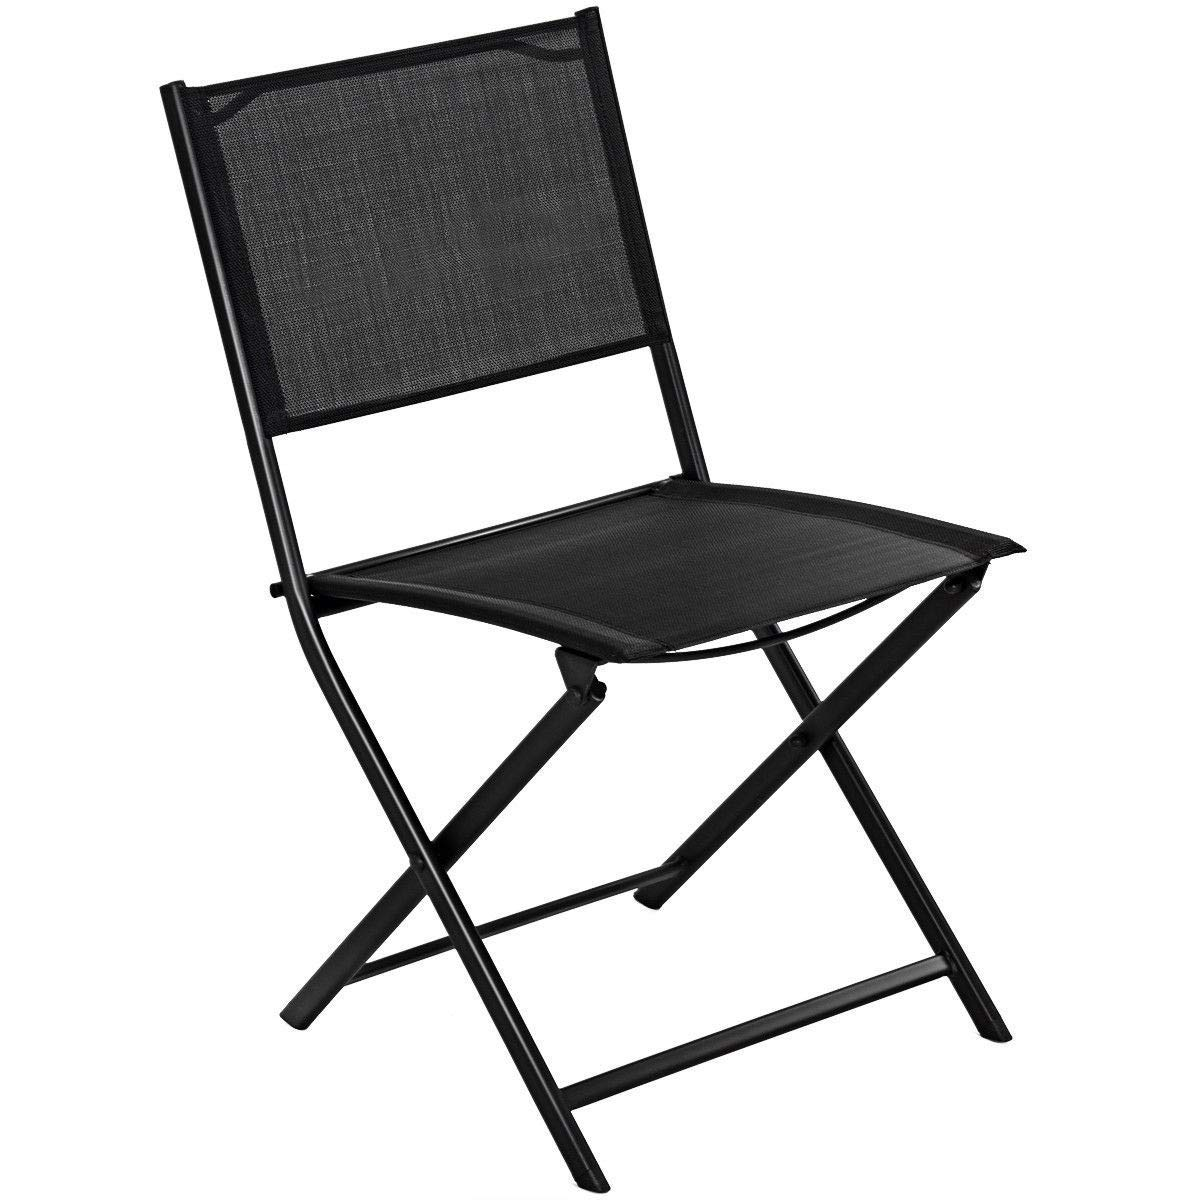 Cheap White Sling Patio Chairs Find White Sling Patio Chairs Deals